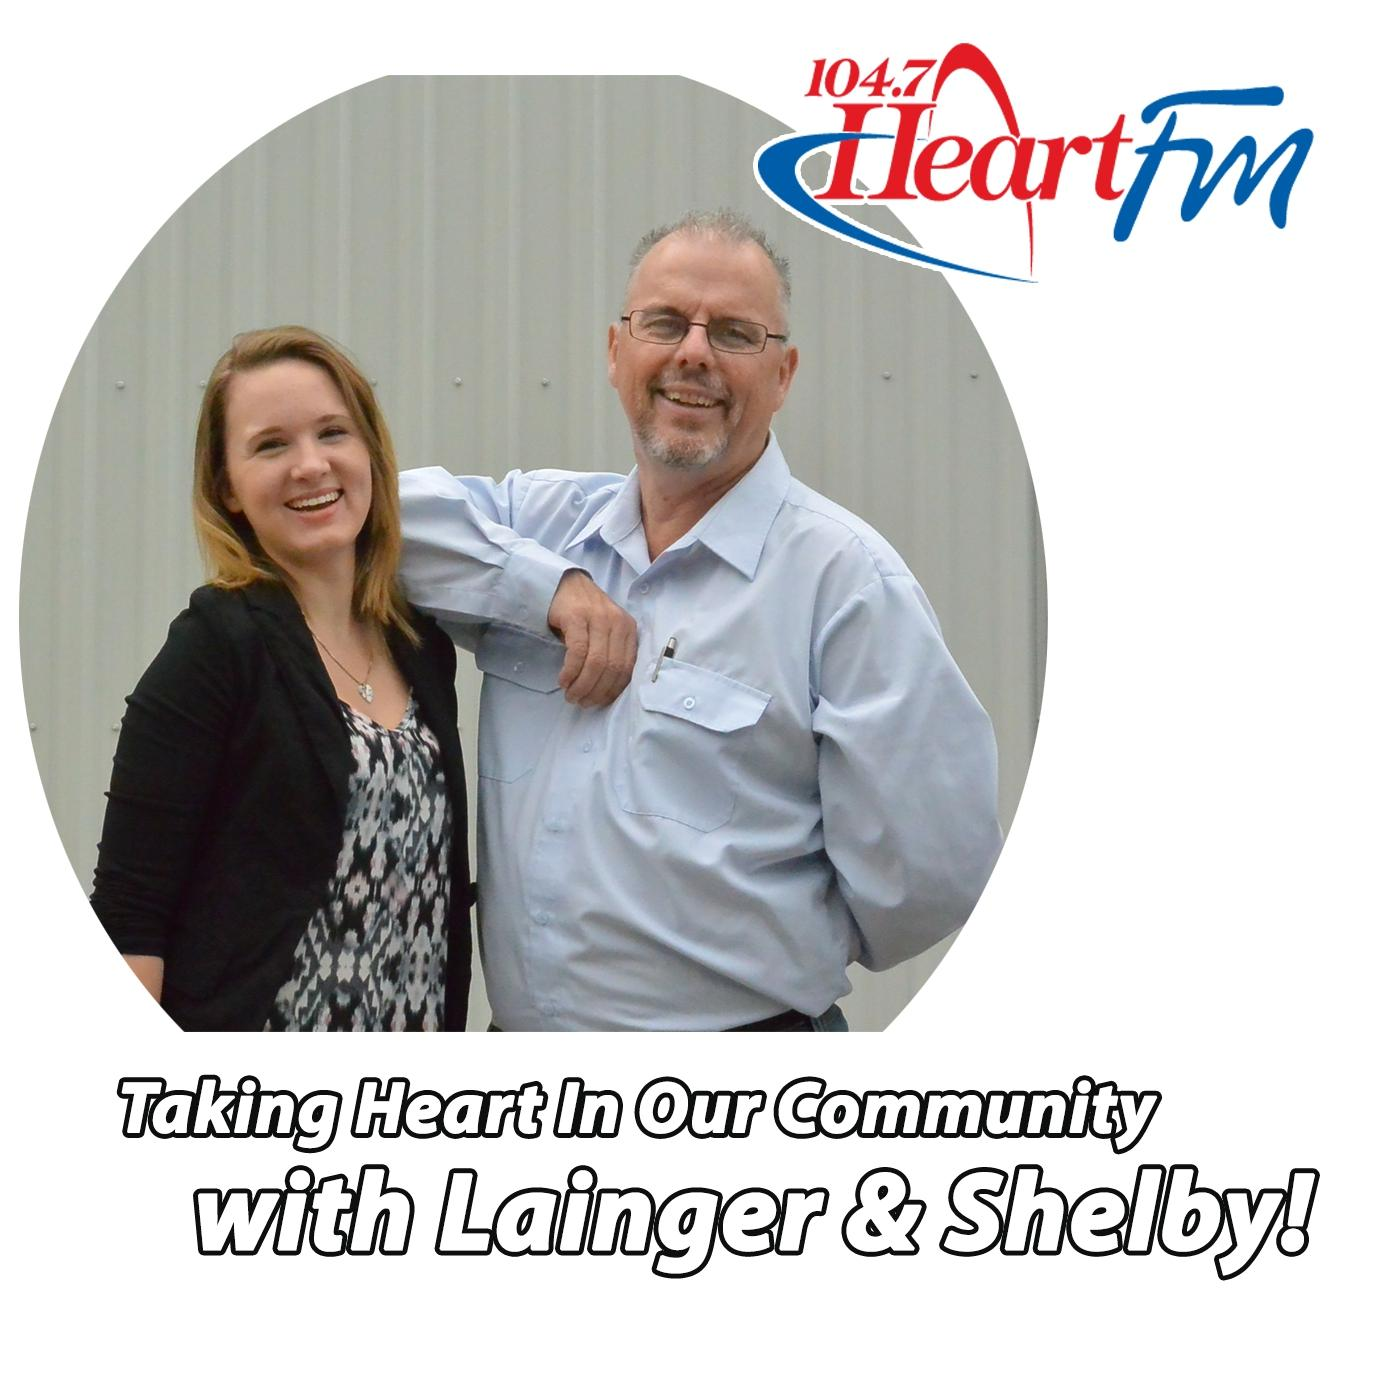 Taking Heart in our Community with Lainger & Shelby